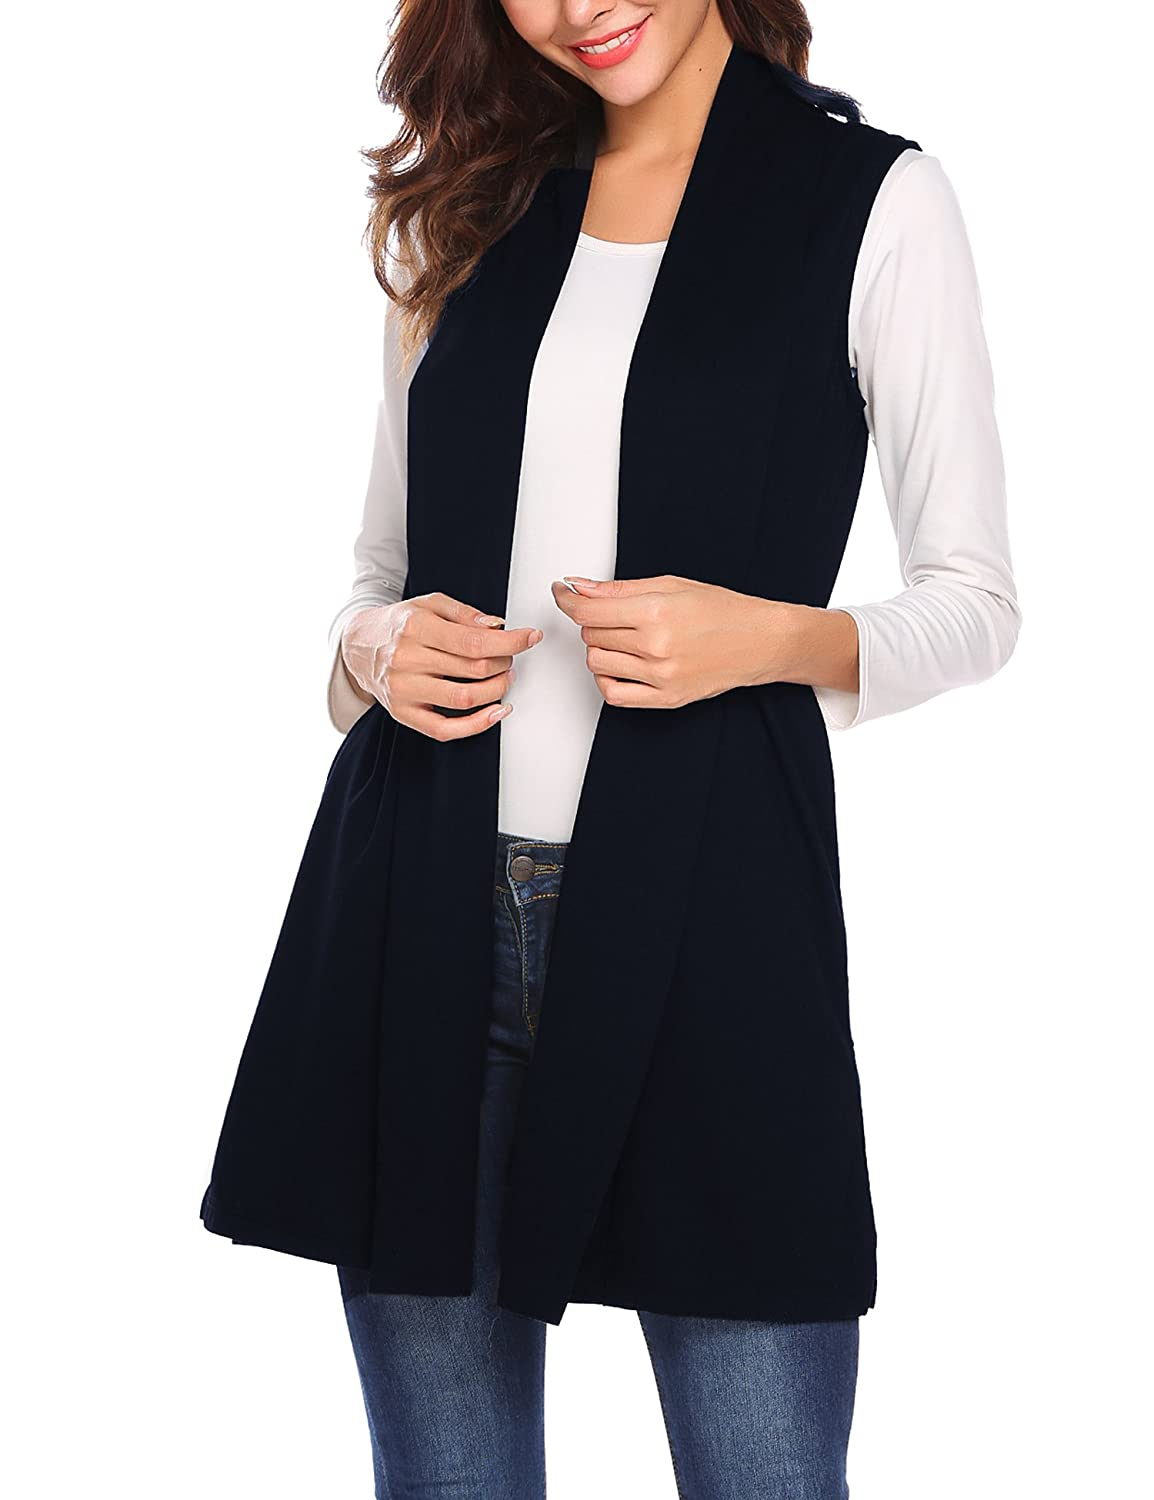 Ladies Colorful 1920s Sweaters and Cardigans History Beyove Womens Long Vests Sleeveless Draped Lightweight Open Front Cardigan Layering Vest with Side Pockets (S-XXL) $26.99 AT vintagedancer.com